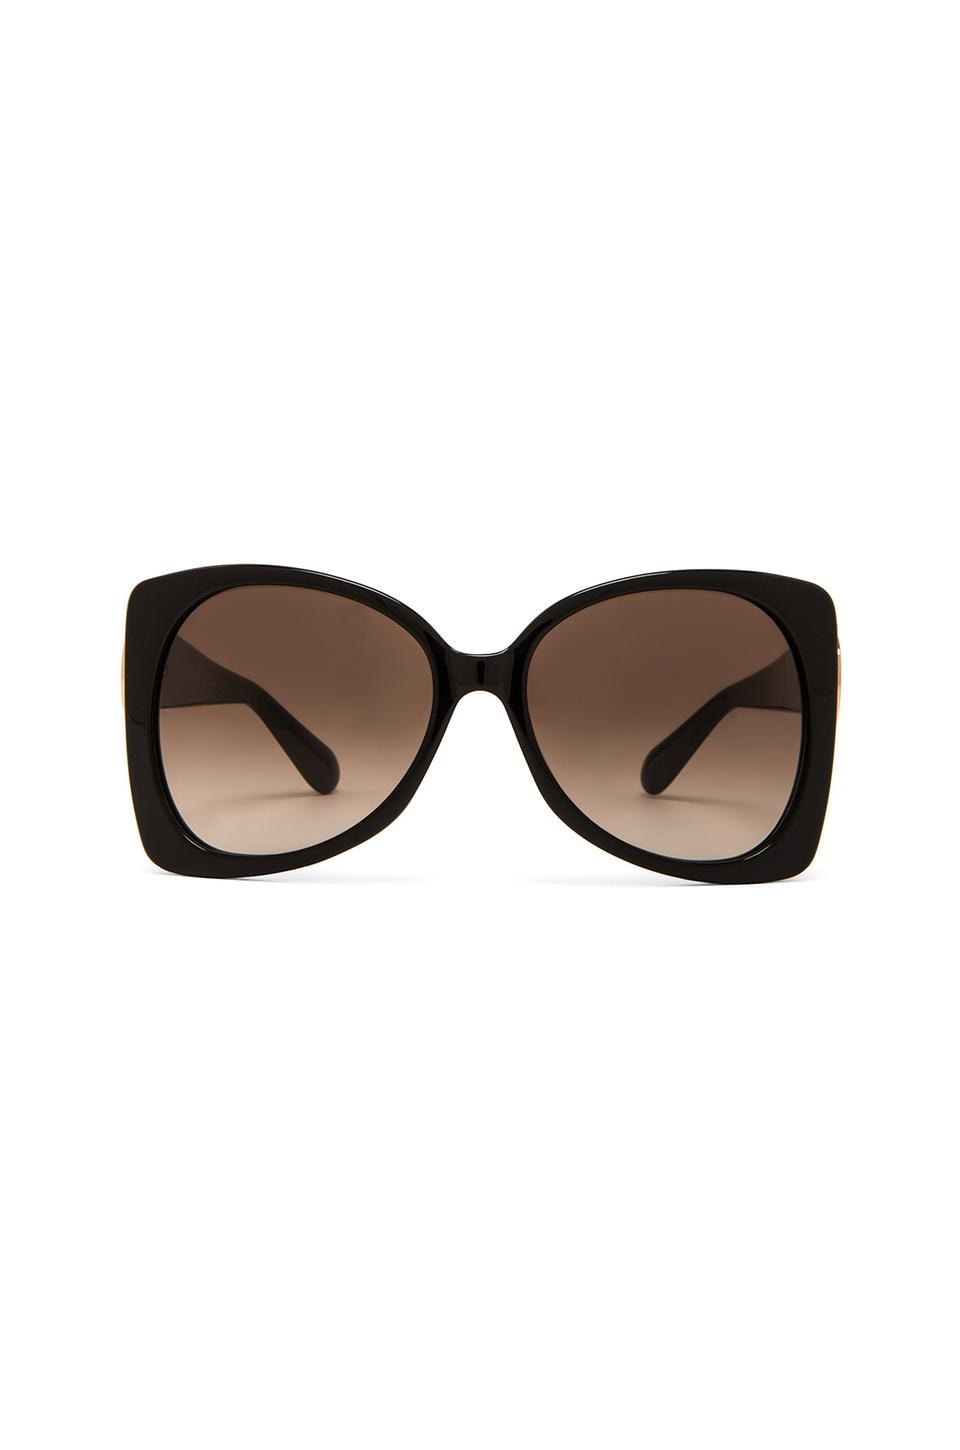 Marc by Marc Jacobs Side Detail Oversize Sunglasses in Black